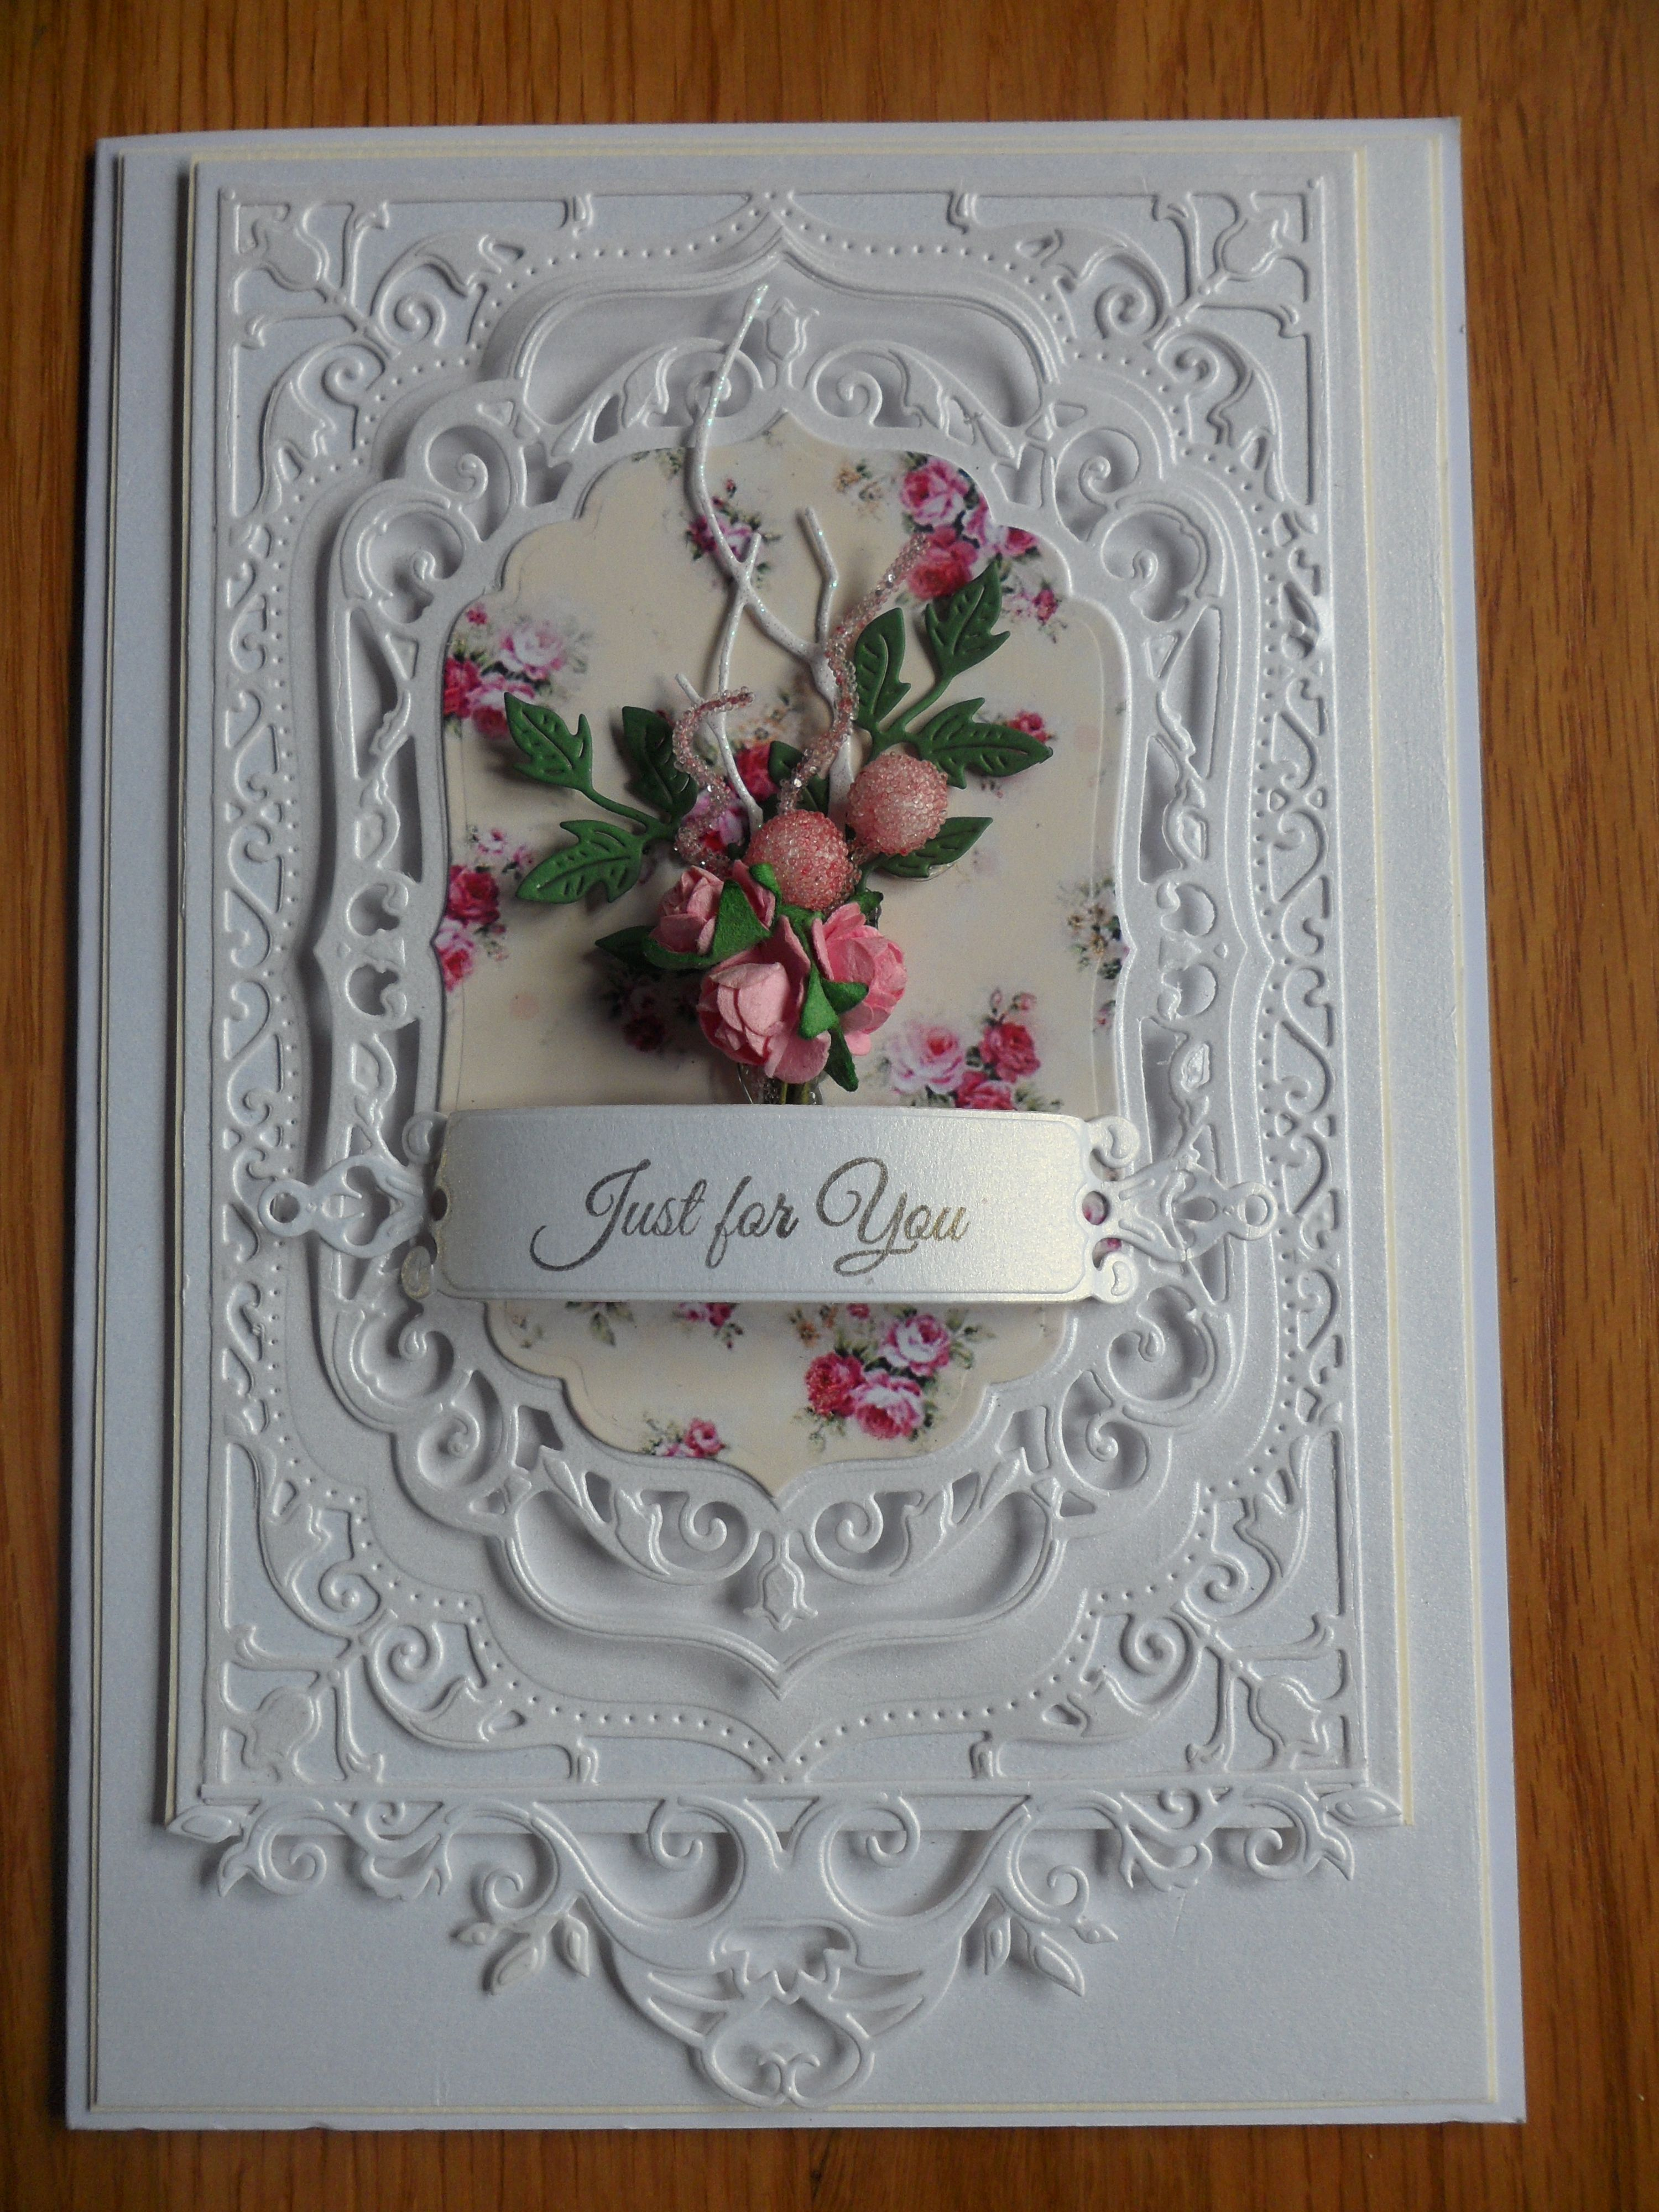 Pin By Ellen Powell On 11 My Cards And Crafts Pinterest Birthday Cards Cards Handmade Elegant Cards